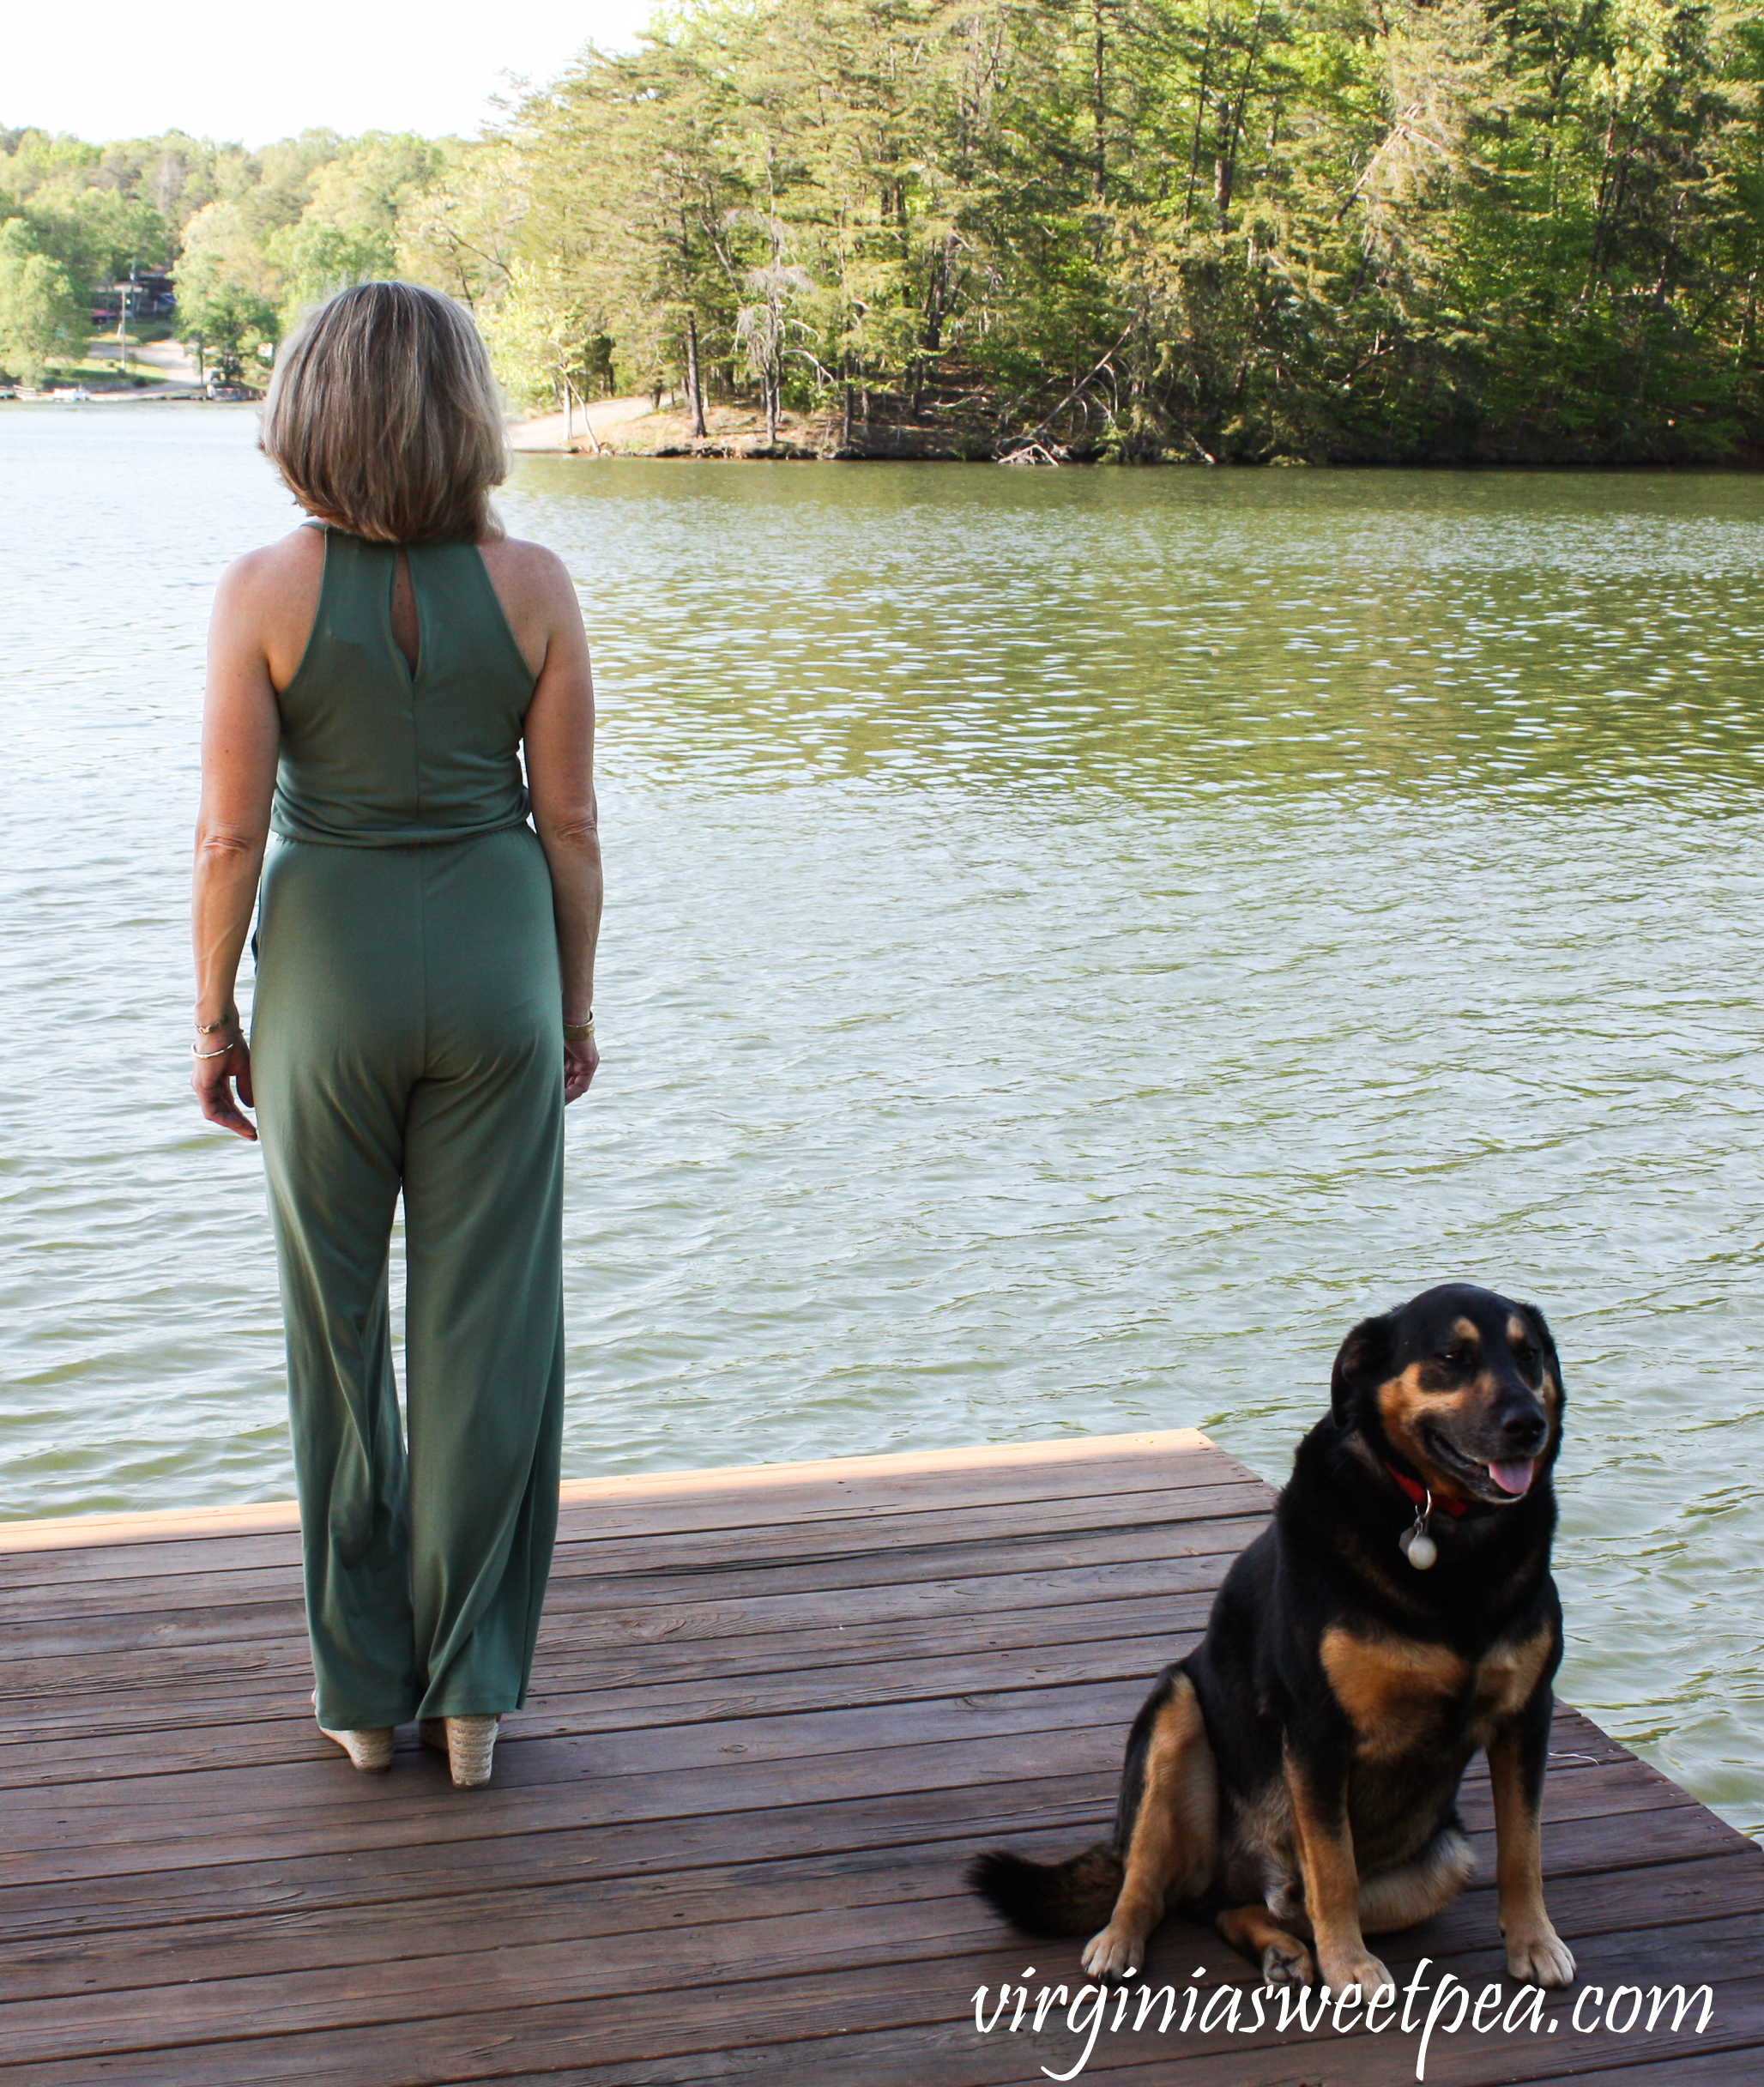 Stitch Fix Review for May 2019 - Goldray Lowrey Knit Jumpsuit #stitchfix #stitchfixreview #stitchfixsummer #shermanskulina